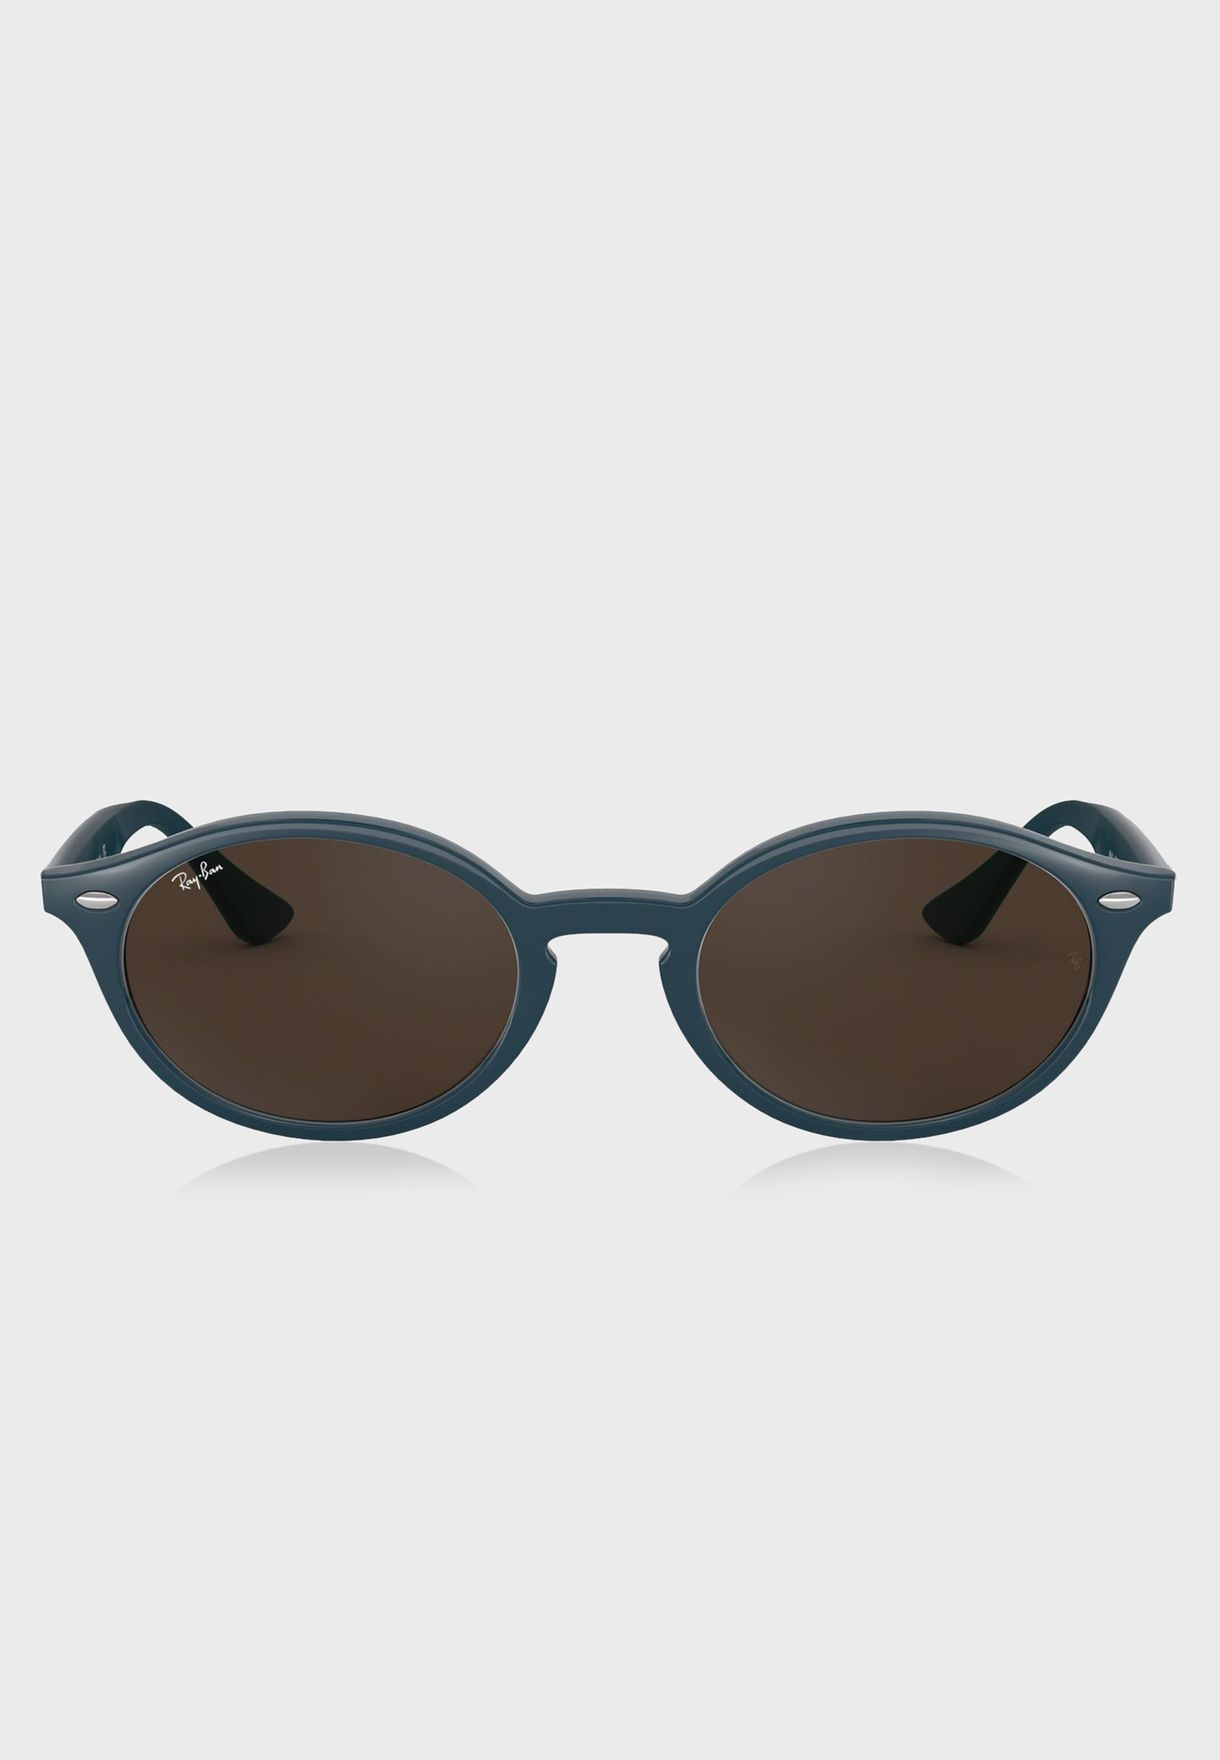 83a898ec1e Shop Ray-Ban blue 0RB4315 Wayfarer Sunglasses 8.05367E+12 for Men in ...